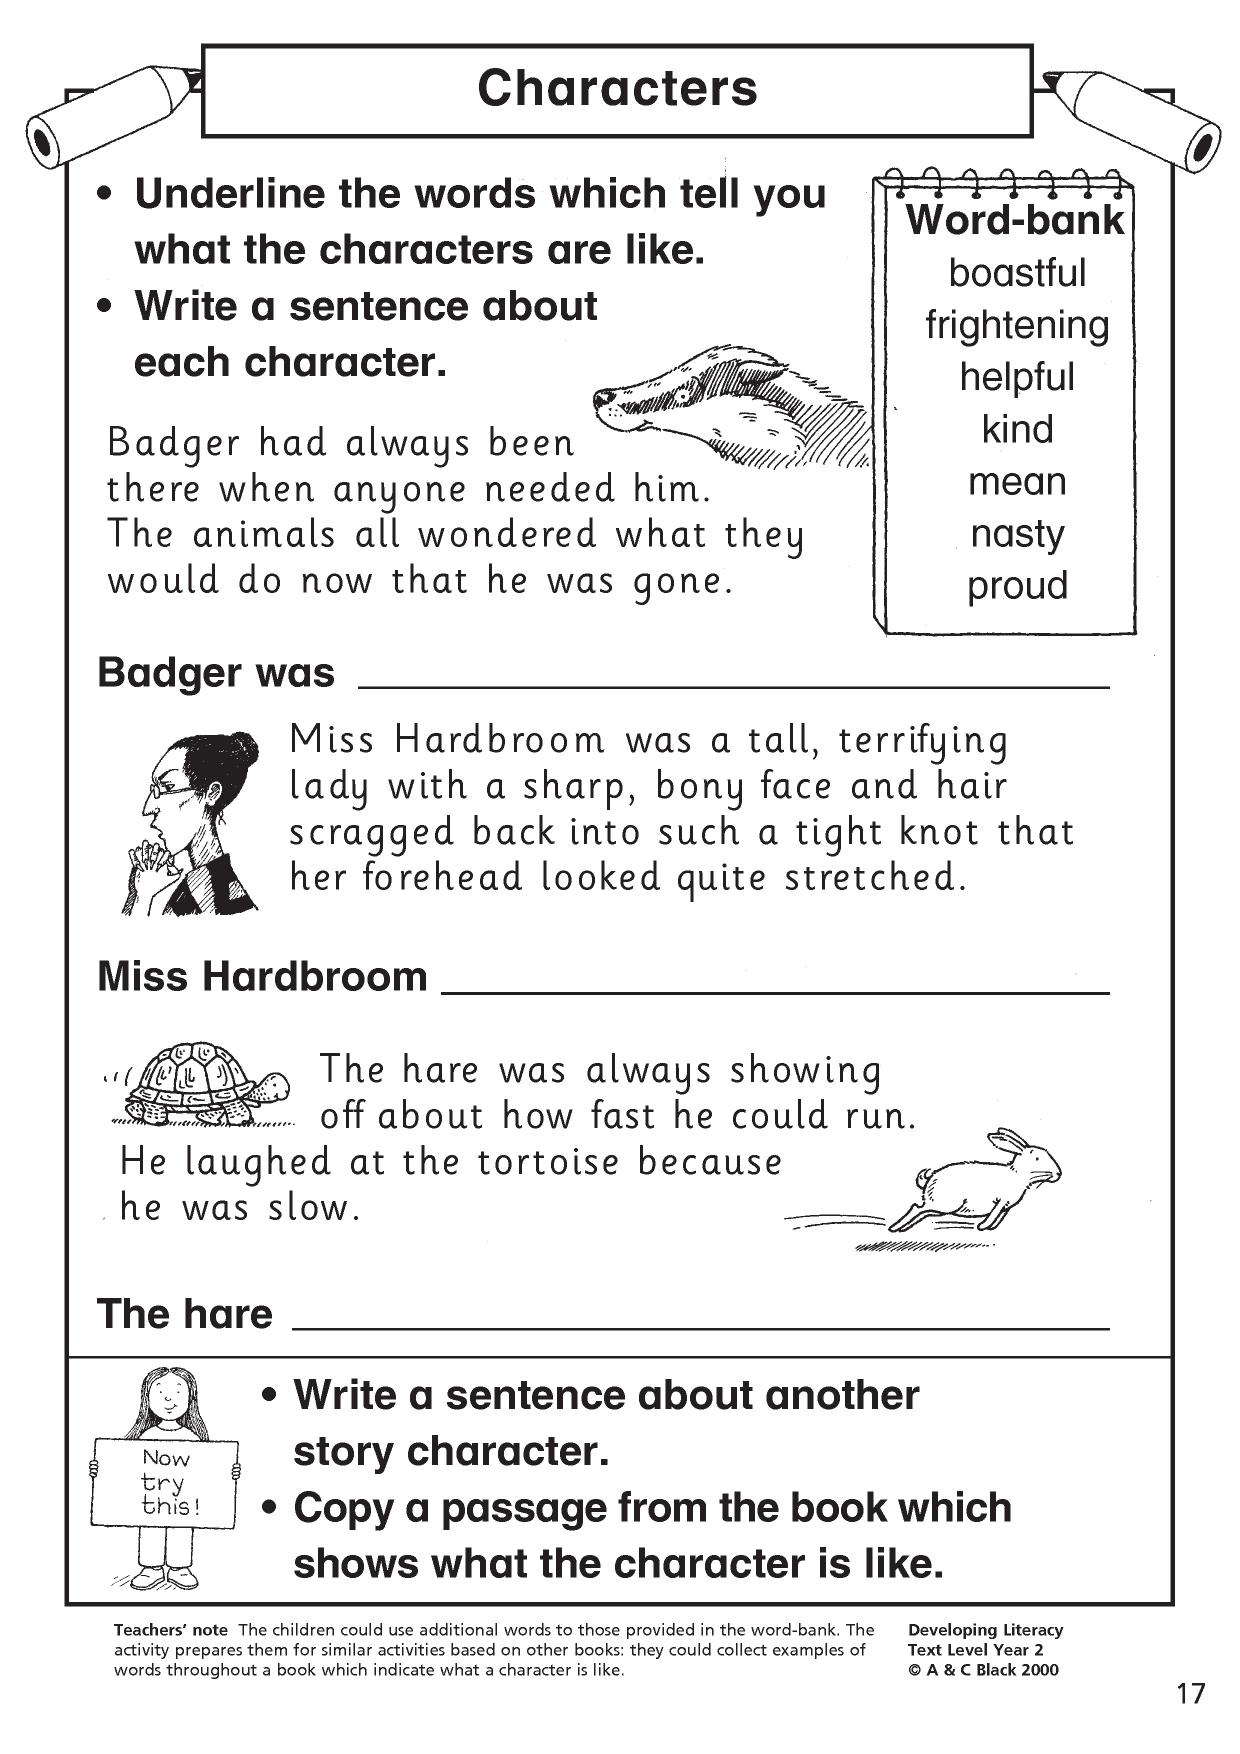 Reading comprehension teaching resources for FS, KS1 and